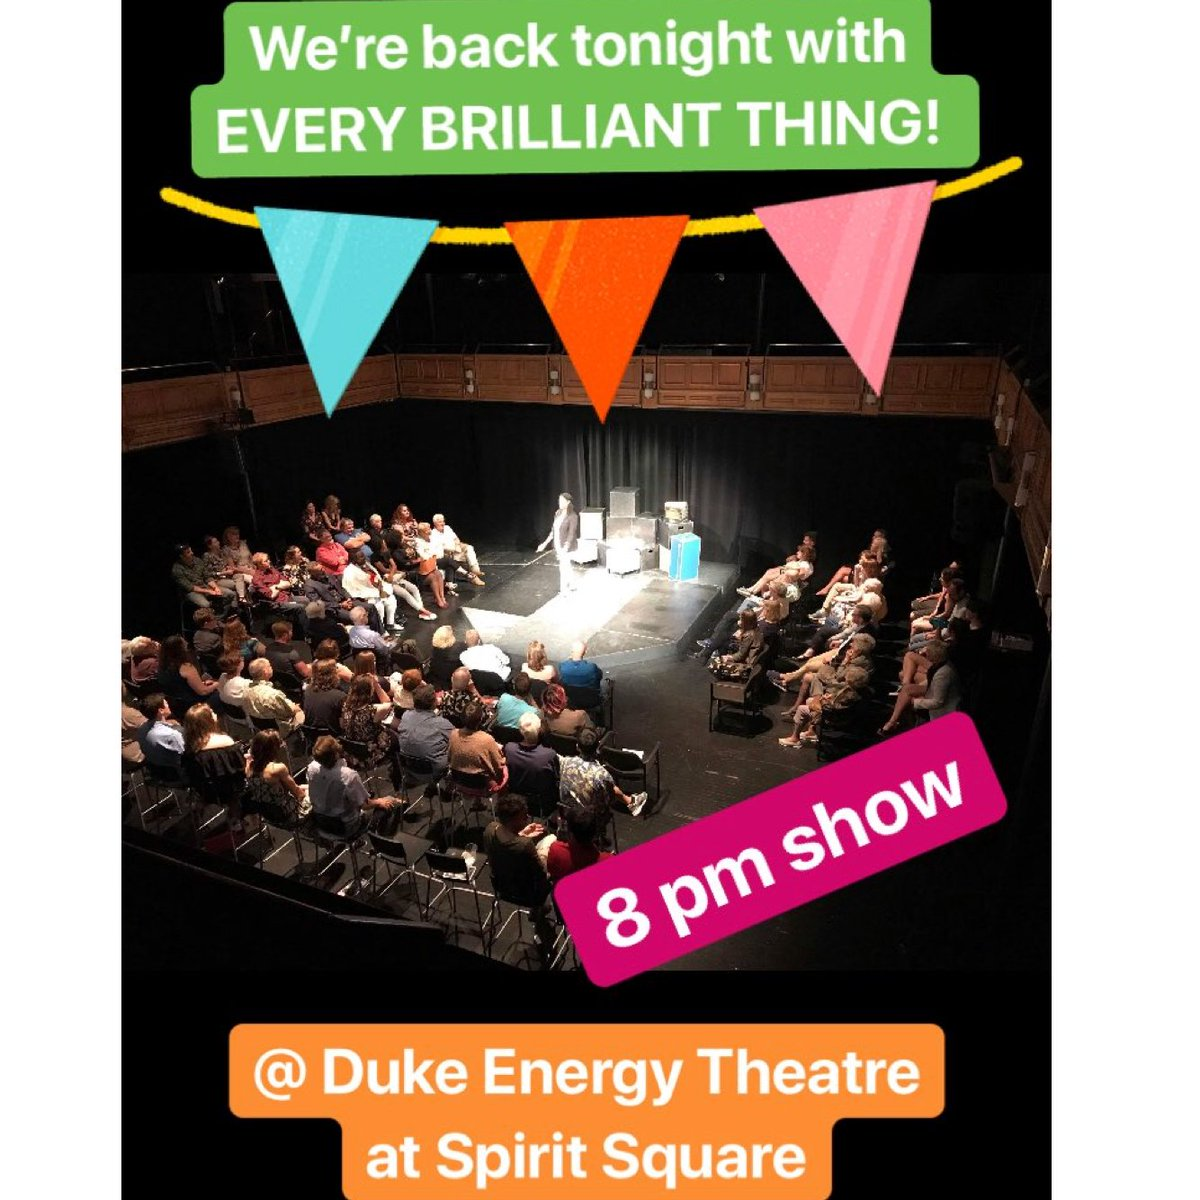 Retweet if we will see you there this weekend!!! #EveryBrilliantThing #charlottesgotalot #cltarts #charlotteiscreative #supportsmallbusiness <br>http://pic.twitter.com/M6MWeOjkMb